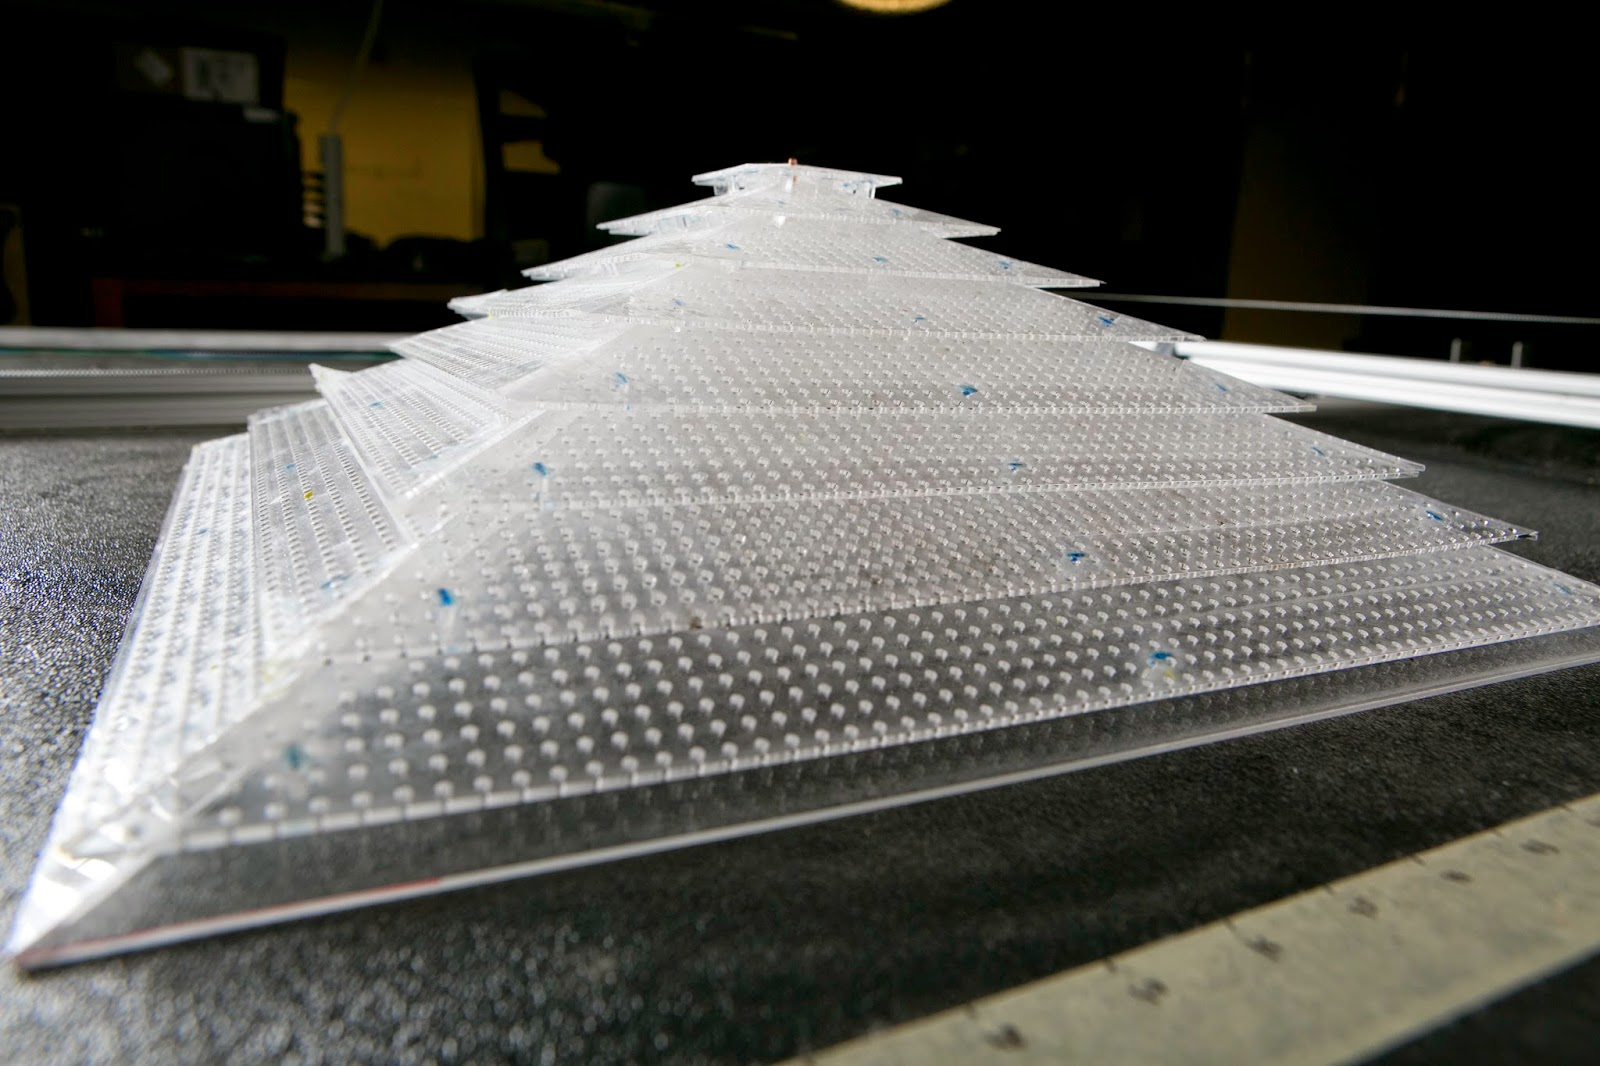 Photograph of acoustic cloaking device